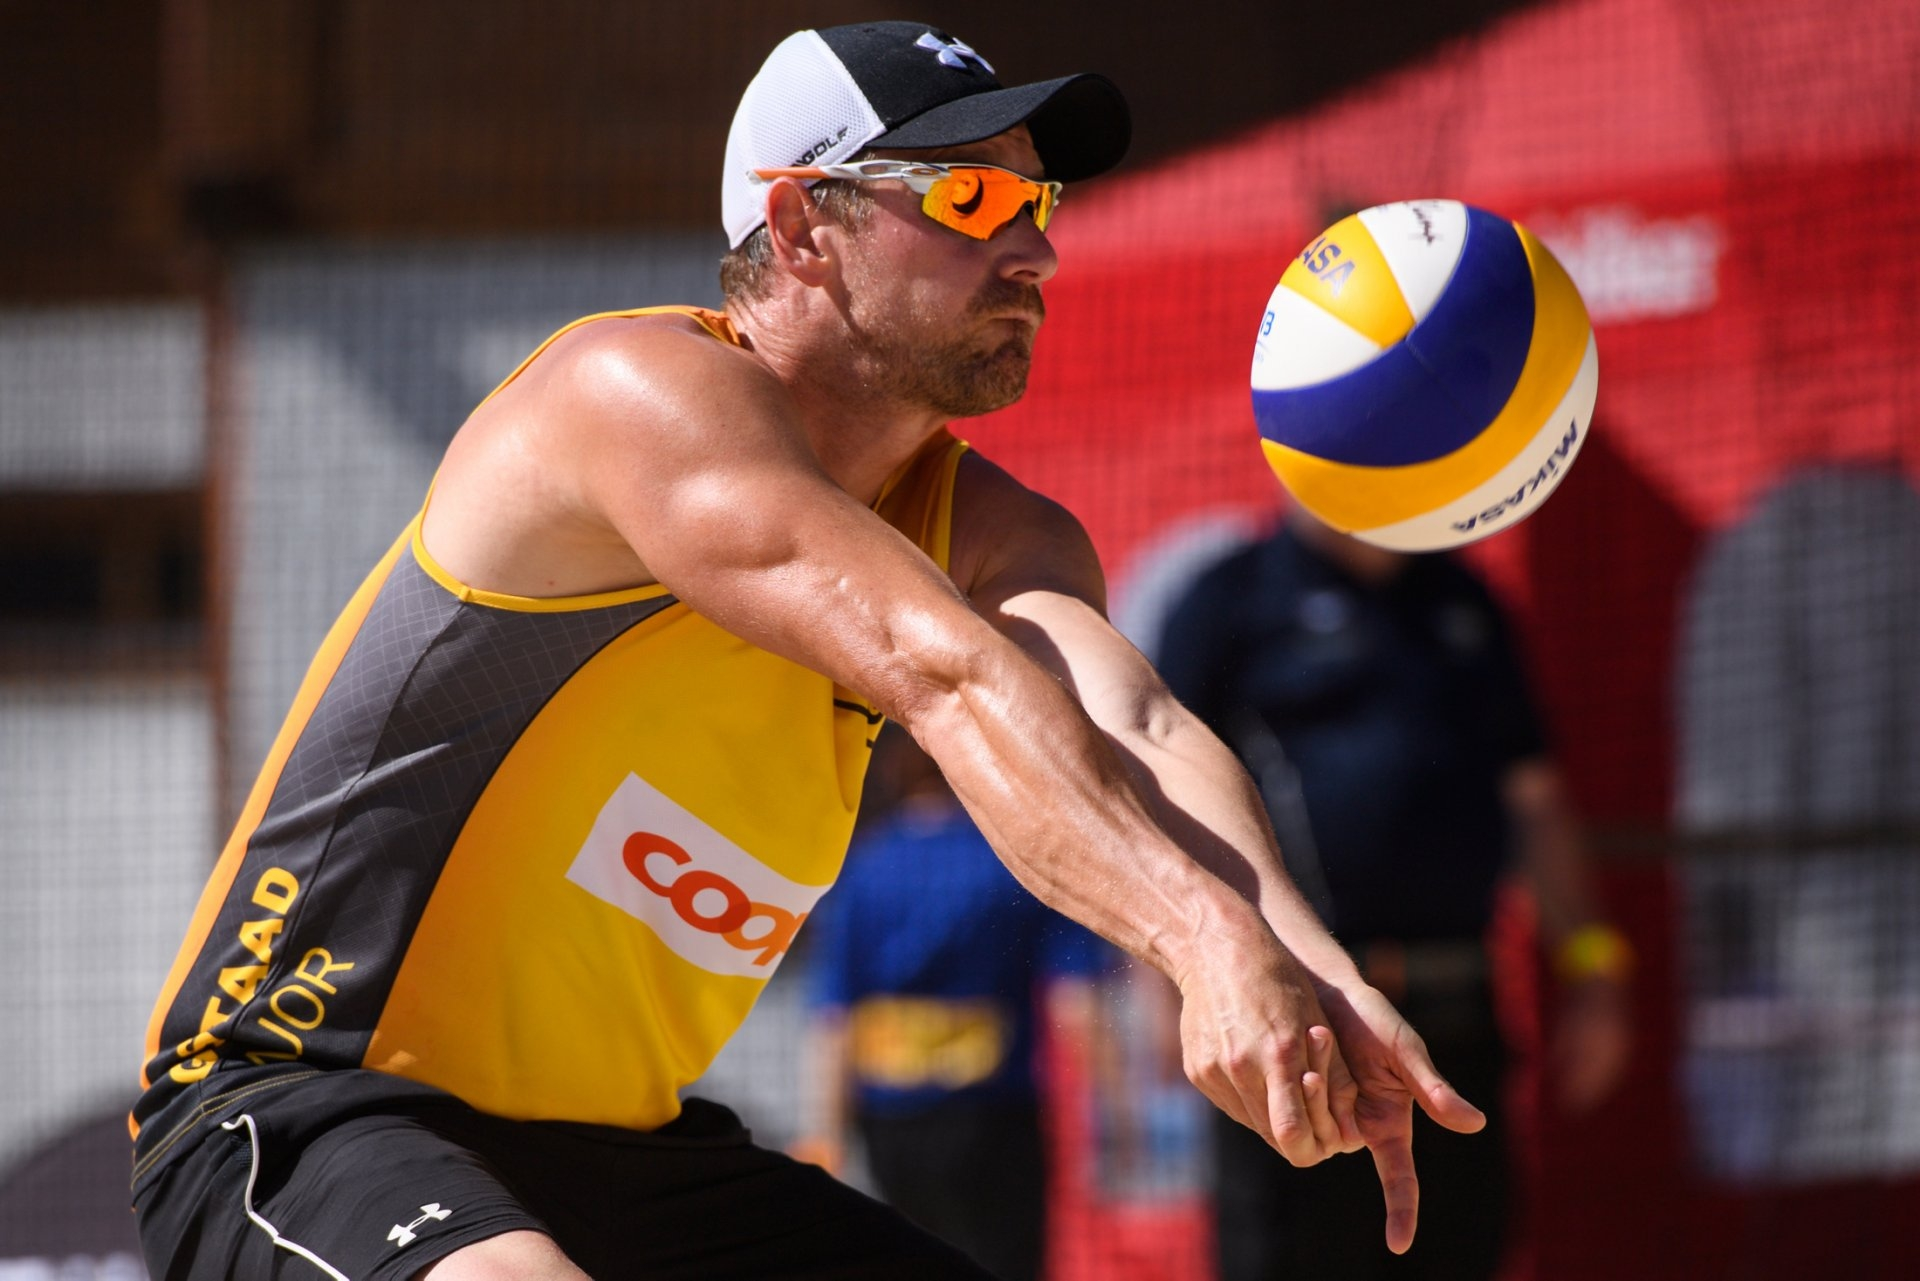 Matysik coaches Kim Behrens and Sandra Ittlinger in the World Tour (Photocredit: FIVB)